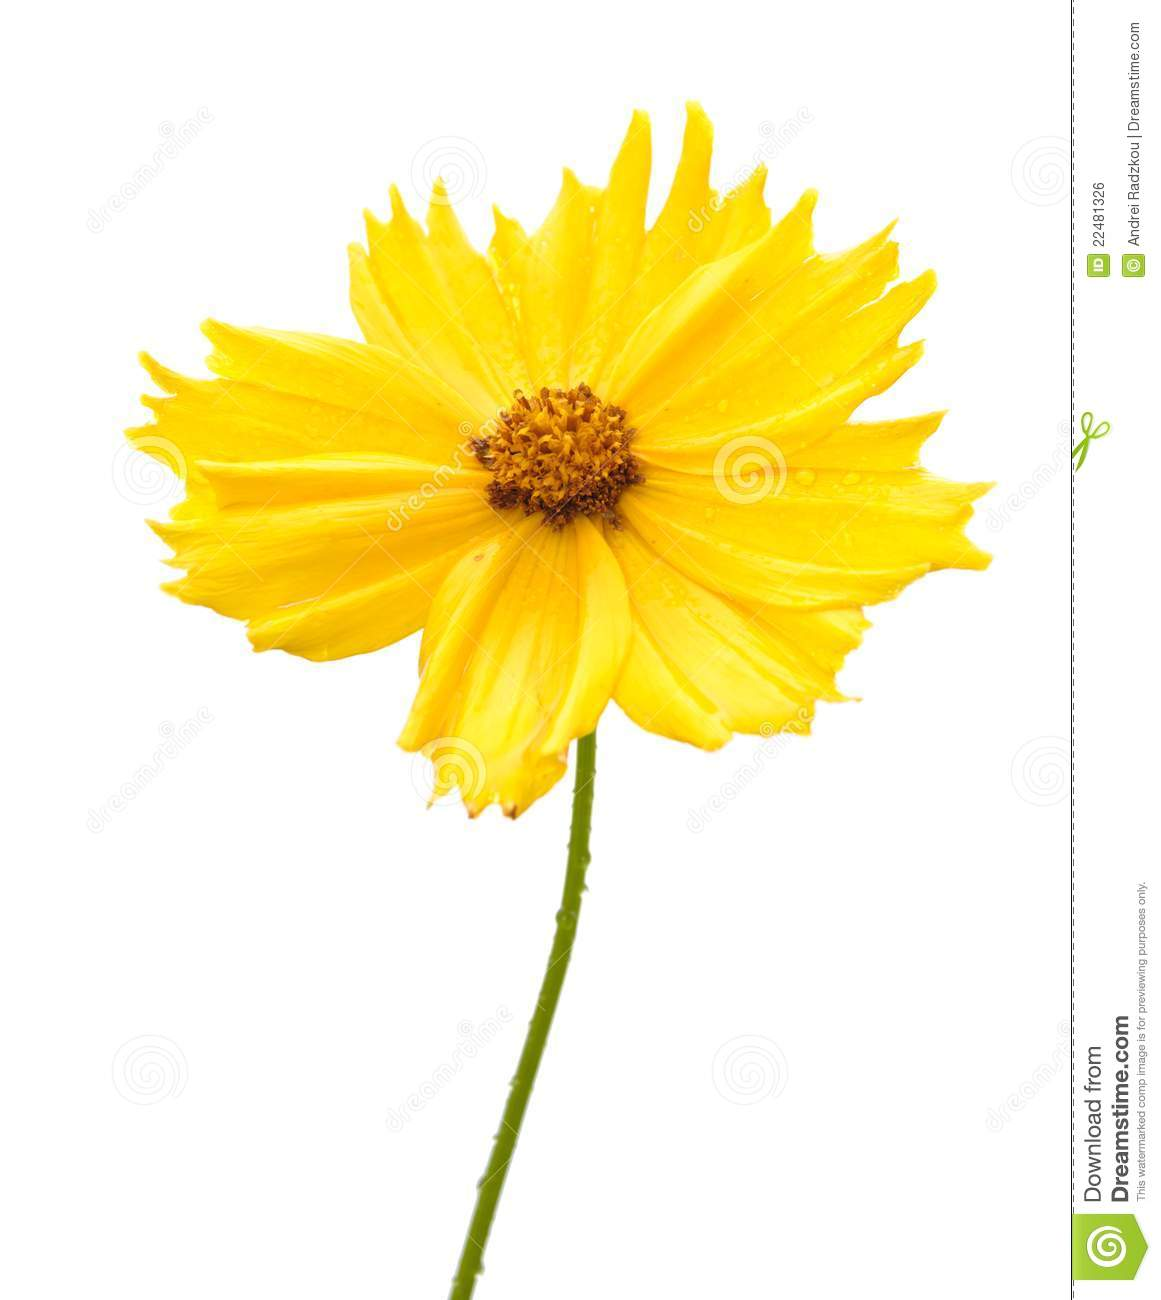 Yellow flower of garden coreopsis stock photo image of blooming download yellow flower of garden coreopsis stock photo image of blooming floral 22481326 mightylinksfo